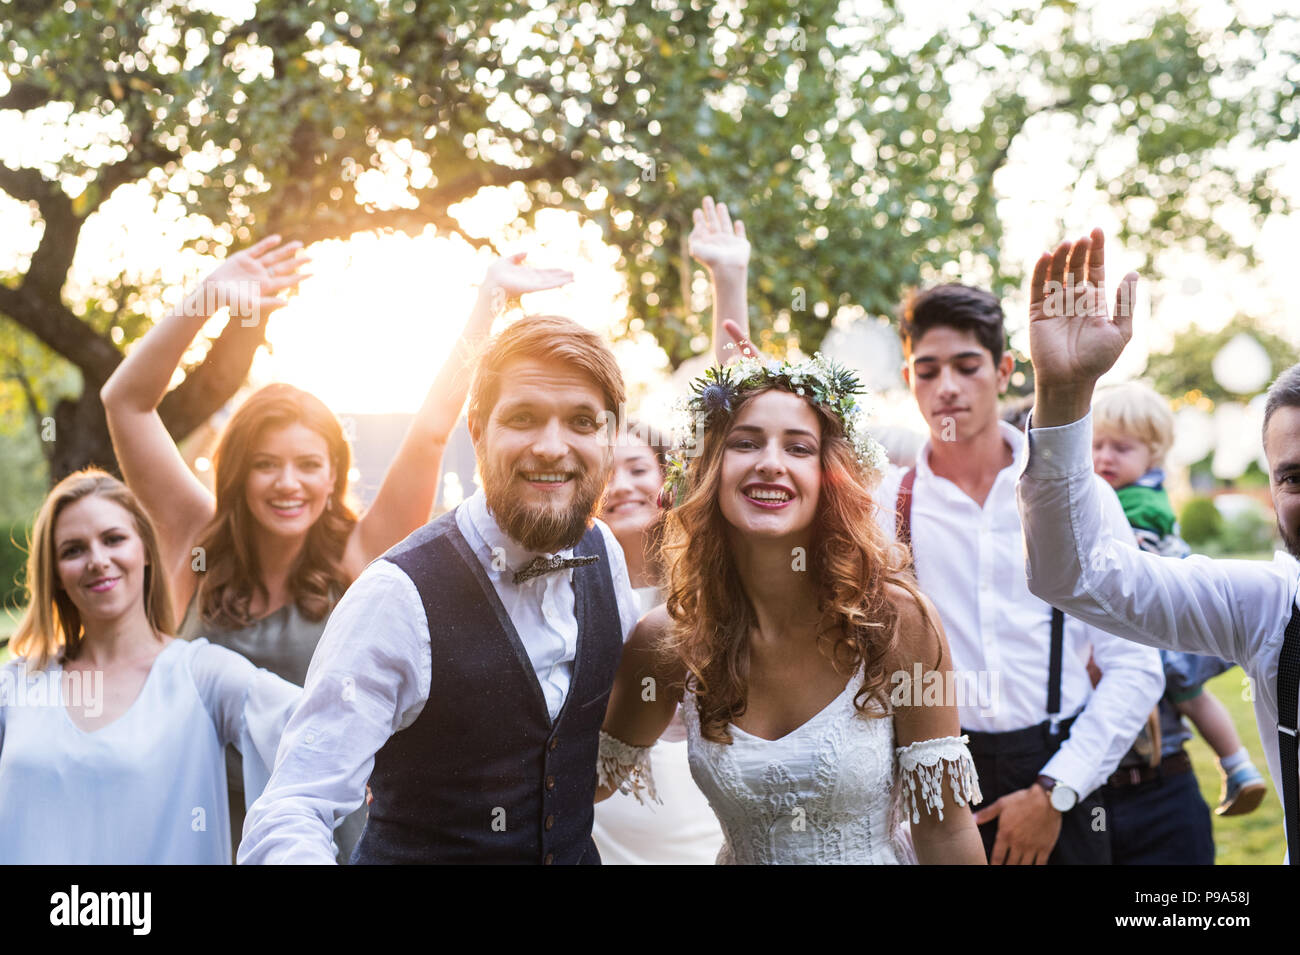 Bride, groom, guests posing for the photo at wedding reception outside in the backyard. - Stock Image